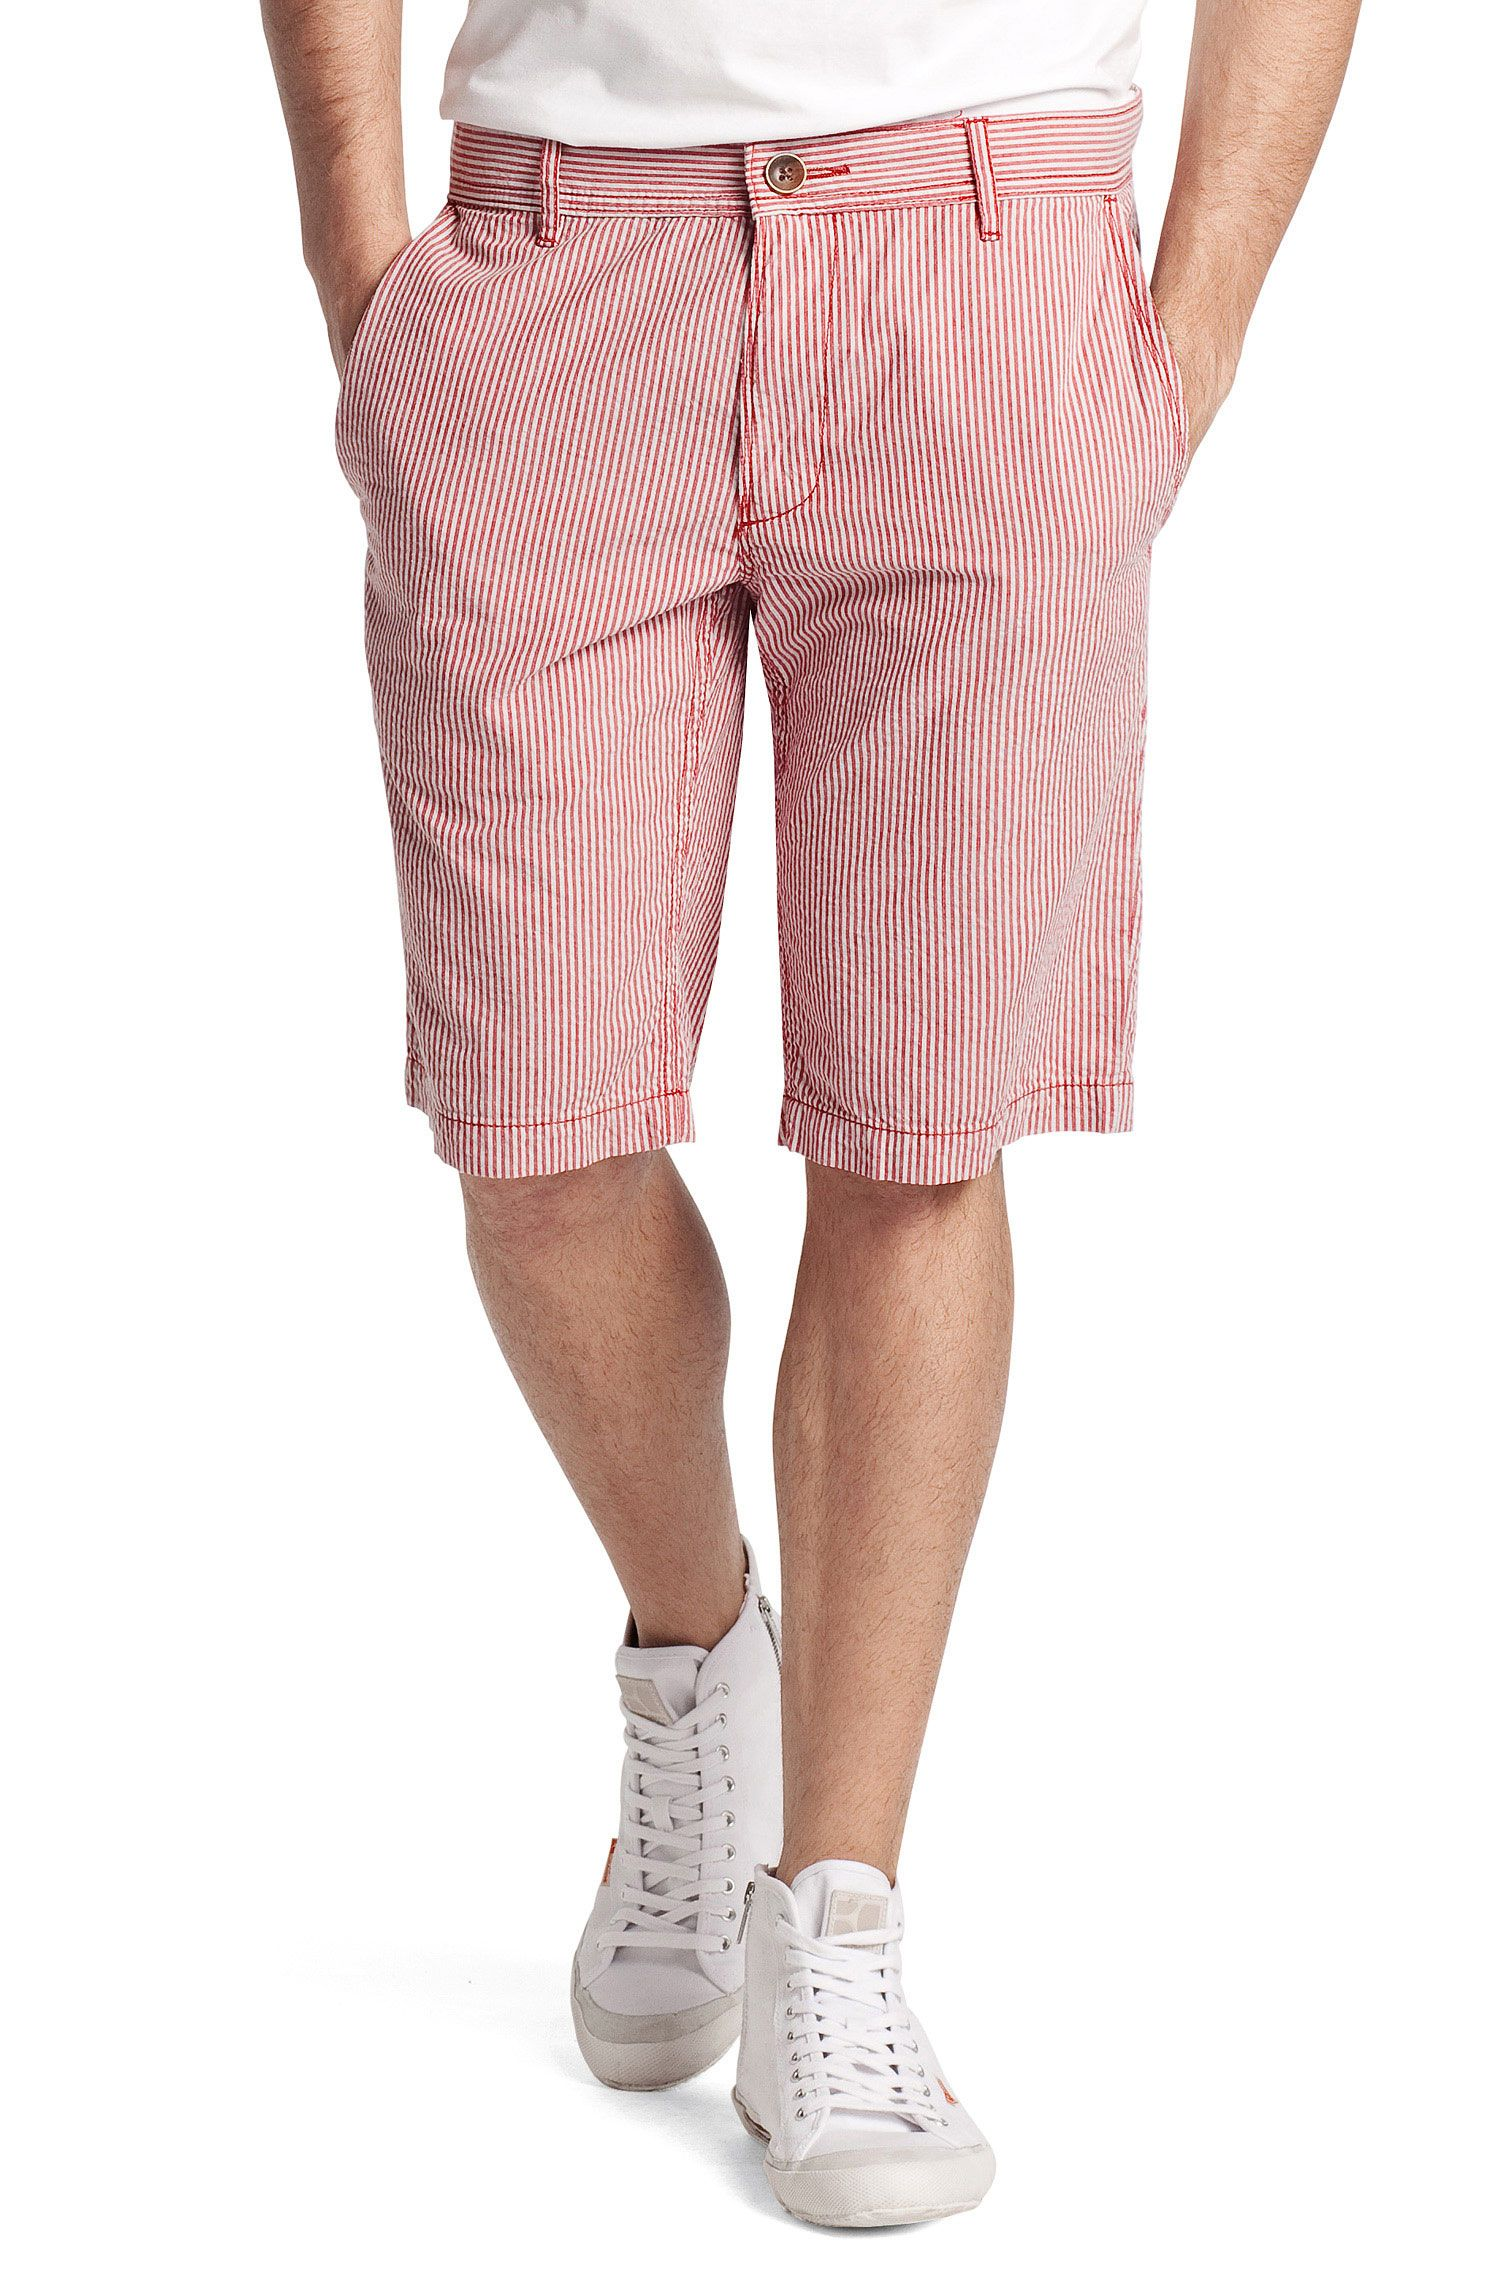 Short ´Shire2-Shorts-W` met strepen